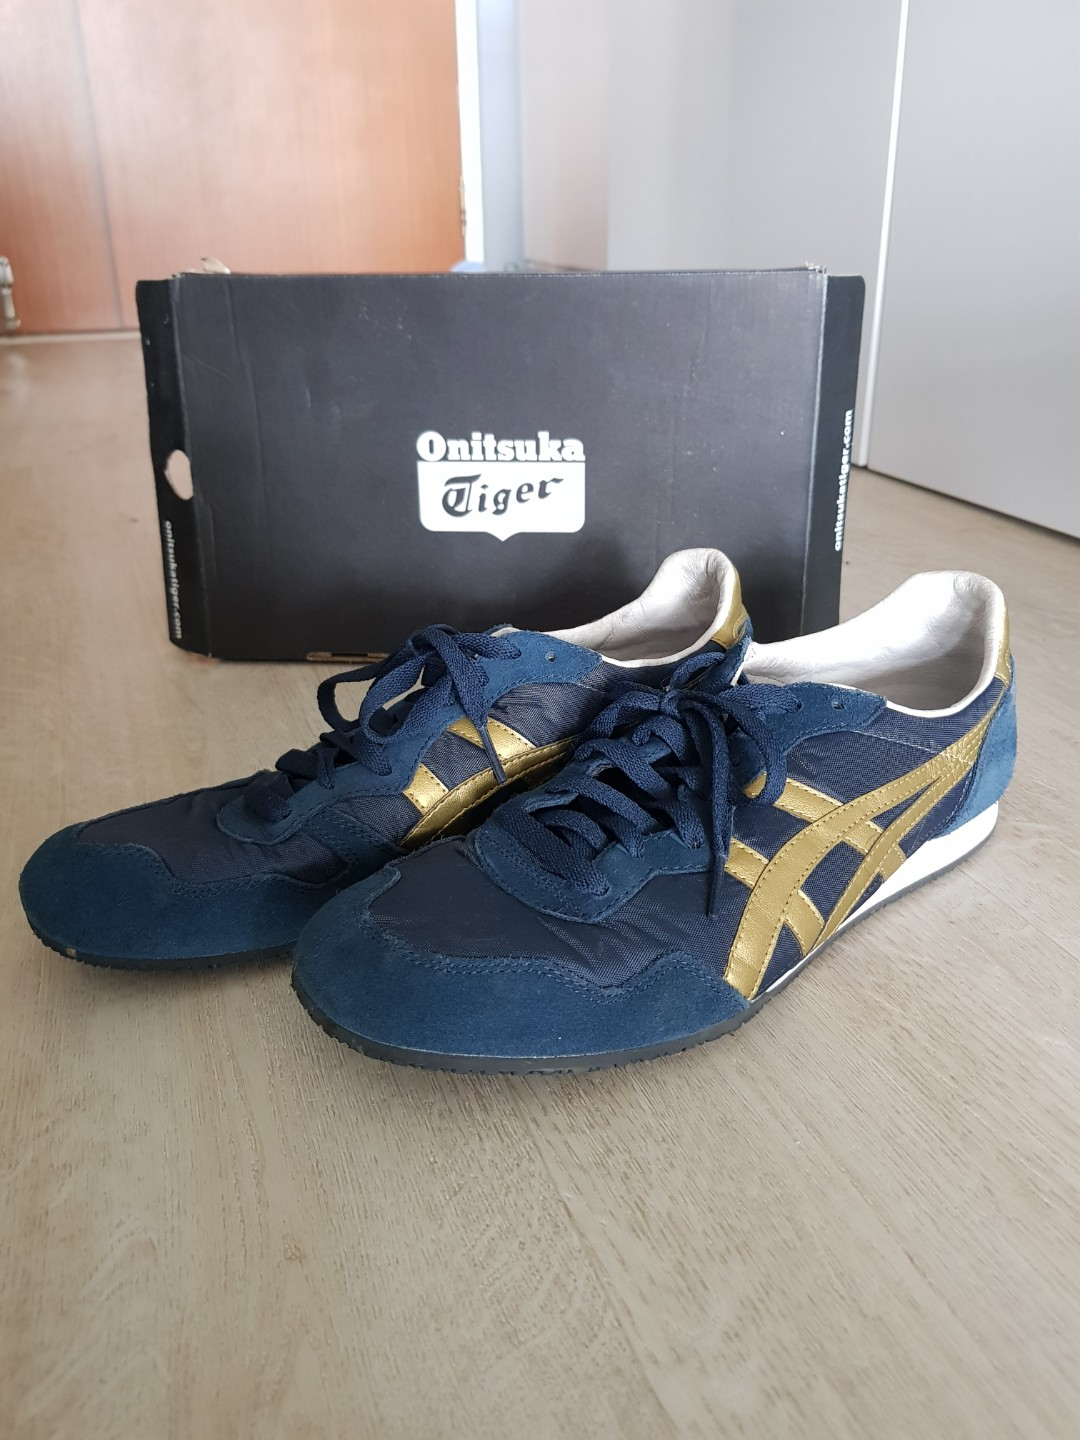 0597cb8947be1 Onitsuka Tiger TH109L Shoes Sneakers US10 (w Pig Lining) without box ...